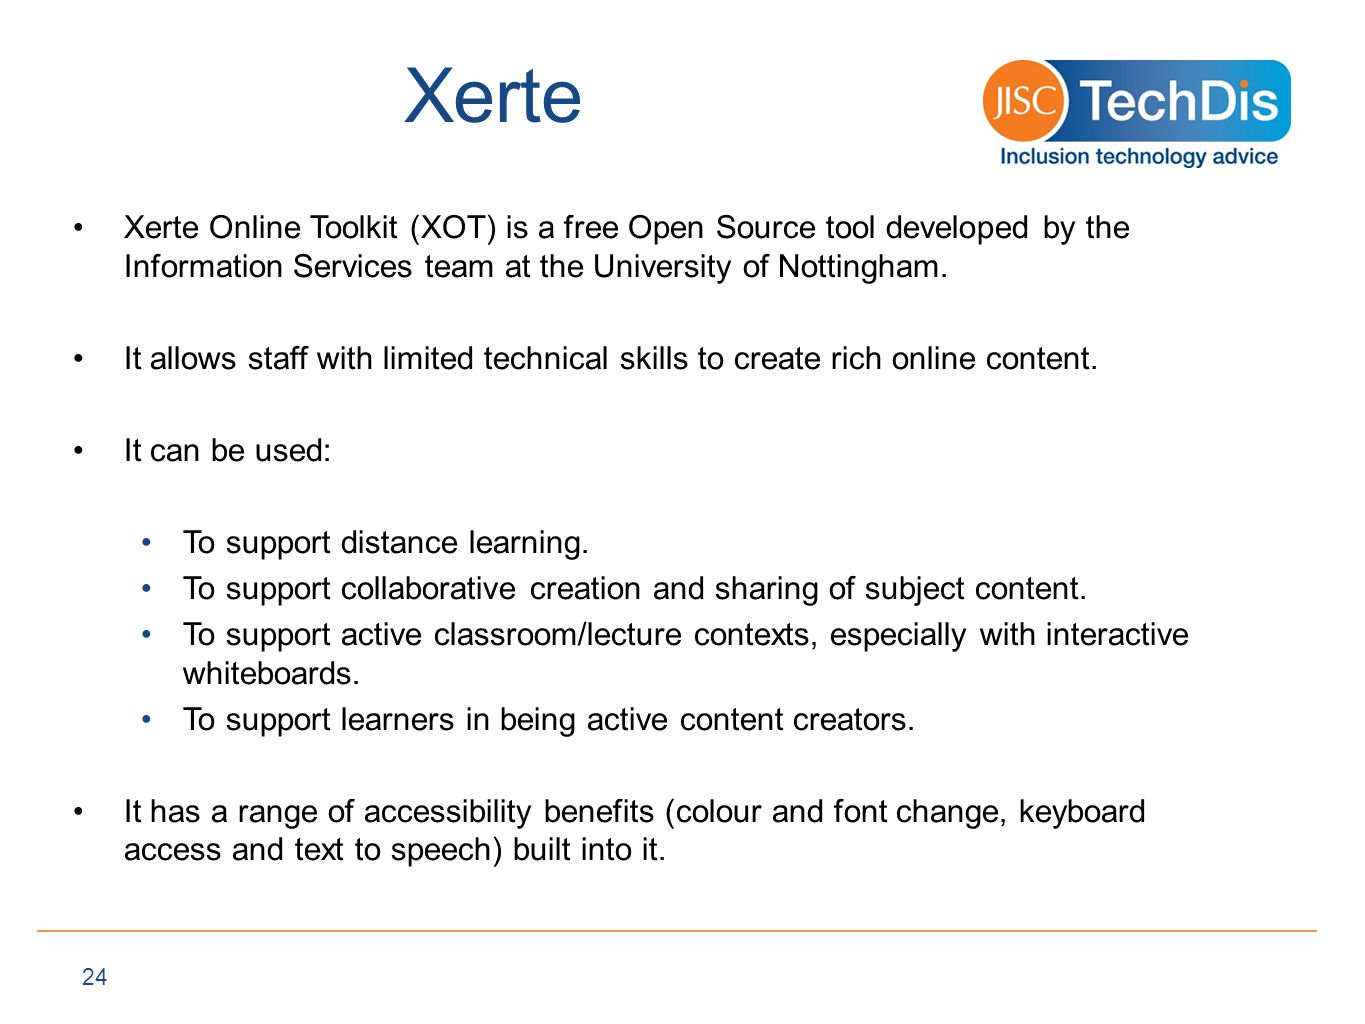 Xerte Xerte Online Toolkit (XOT) is a free Open Source tool developed by the Information Services team at the University of Nottingham.